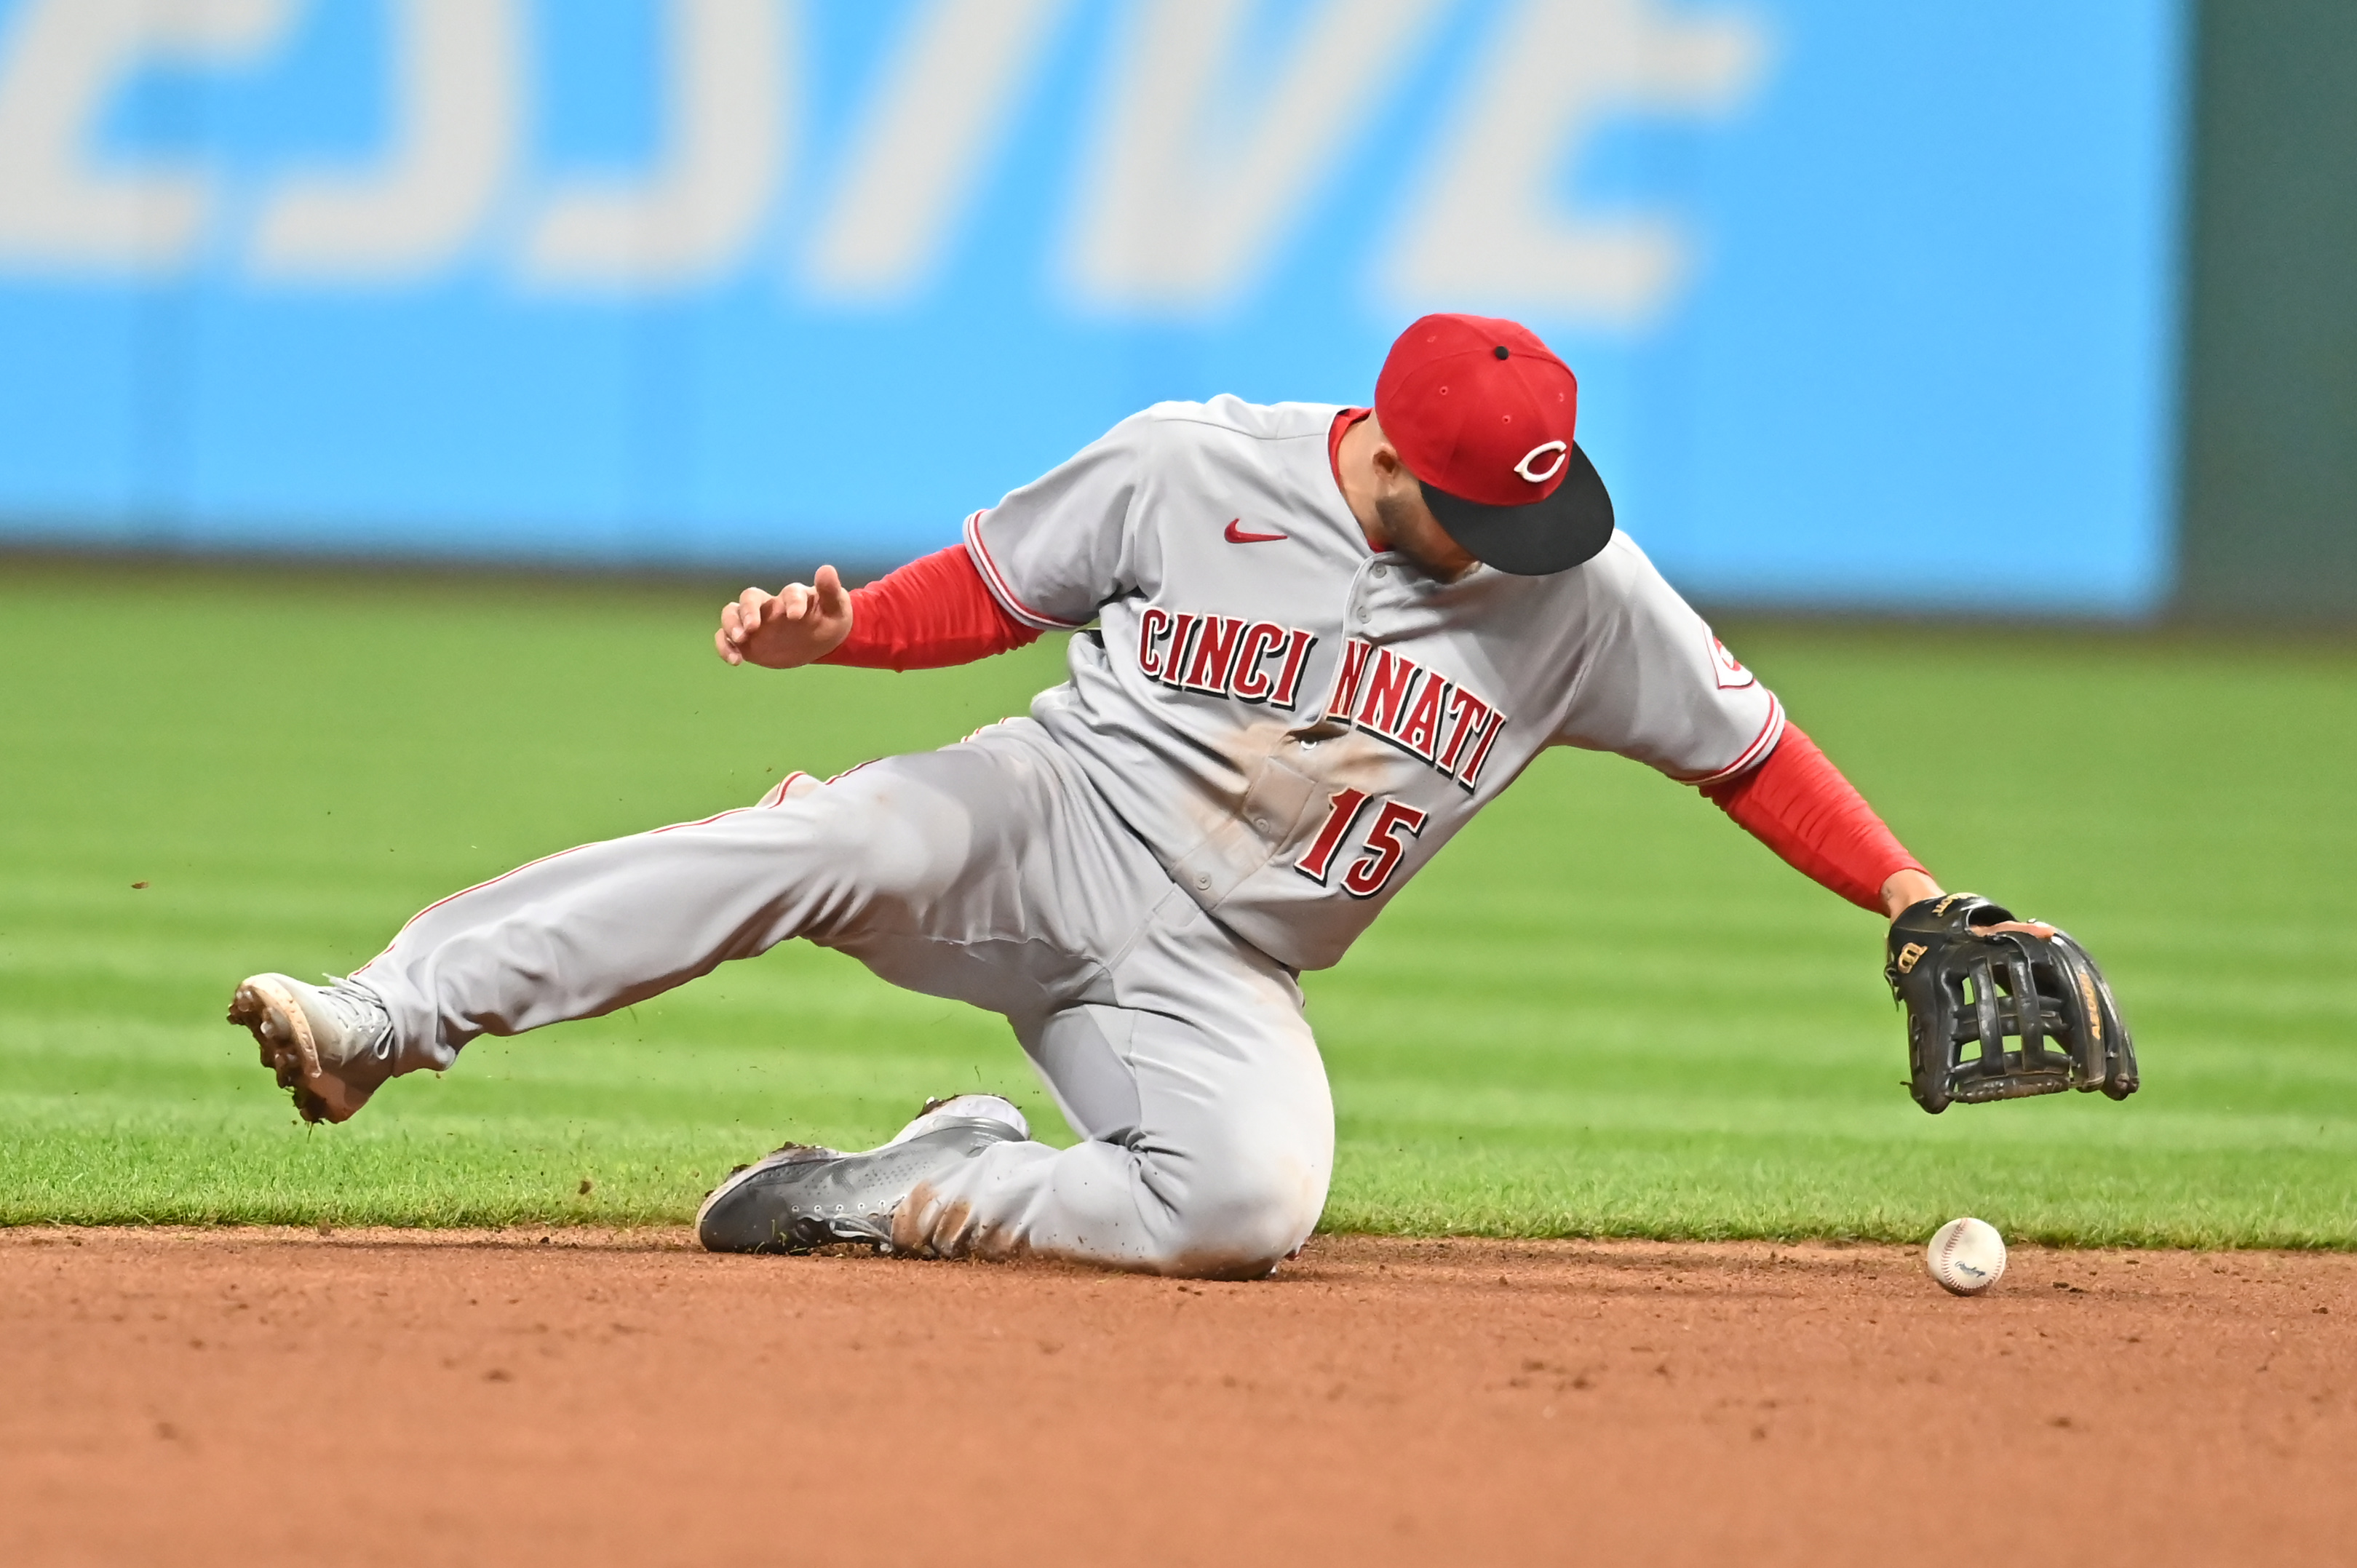 May 7, 2021; Cleveland, Ohio, USA; Cincinnati Reds second baseman Nick Senzel (15) commits a fielding error as he bobbles a ball hit by Cleveland Indians shortstop Amed Rosario (not pictured) during the sixth inning at Progressive Field. Mandatory Credit: Ken Blaze-USA TODAY Sports